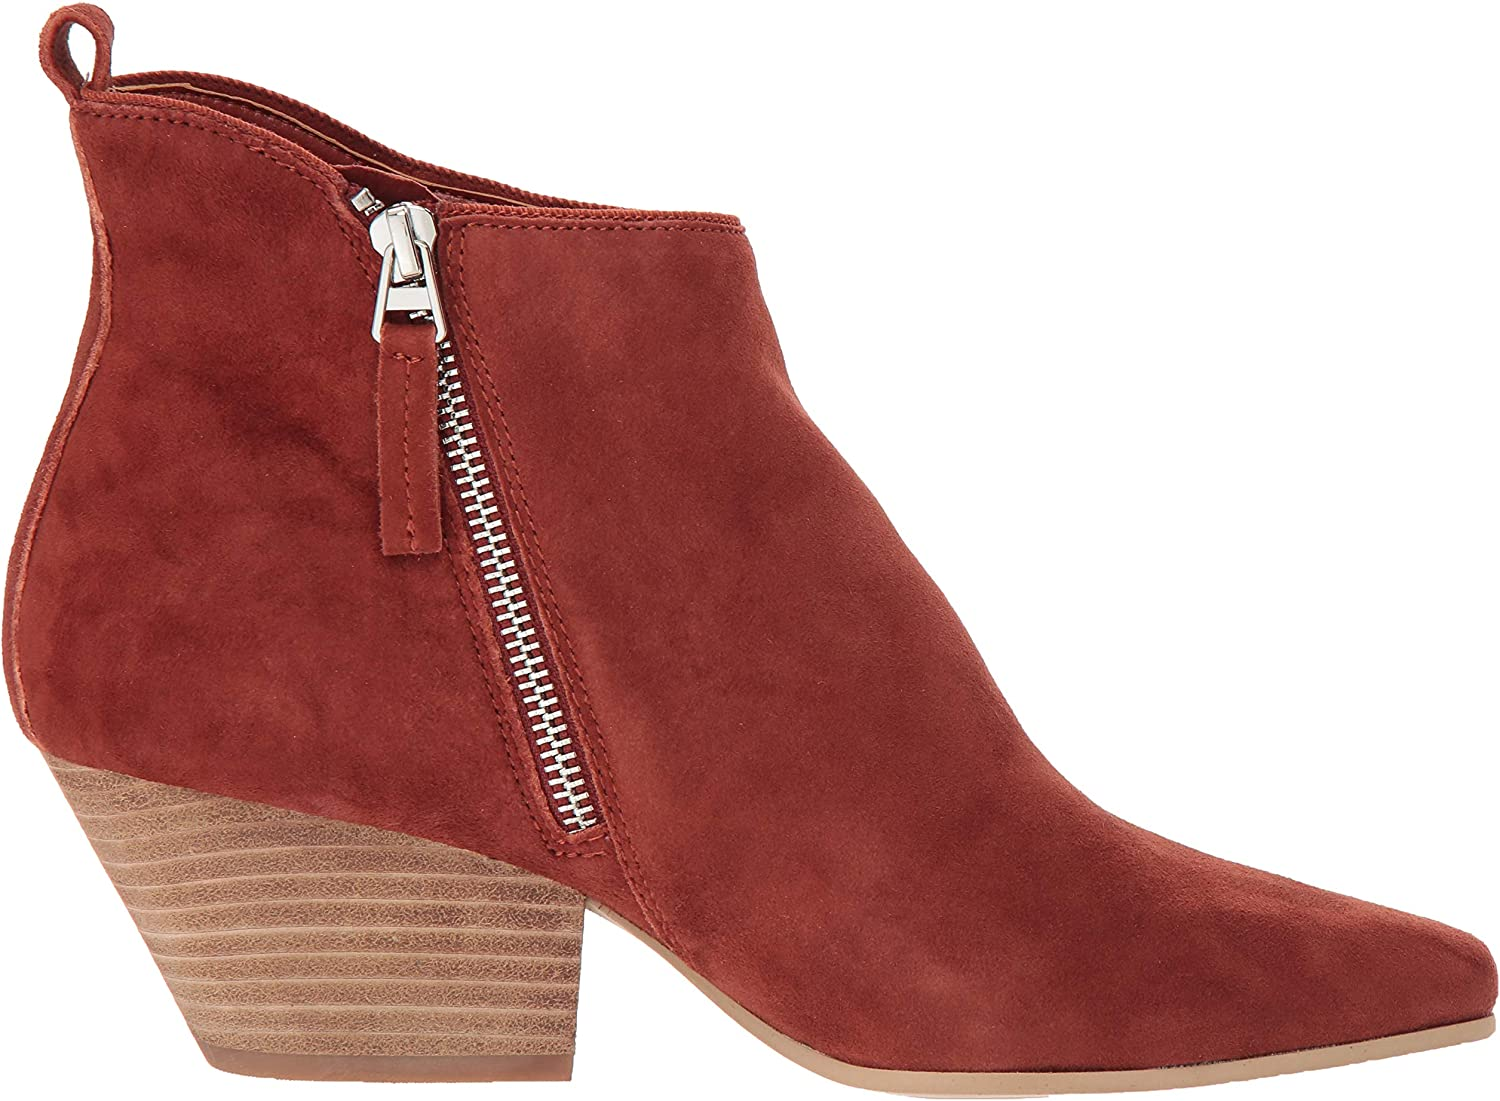 Dolce Vita Womens Pearse Ankle Boot